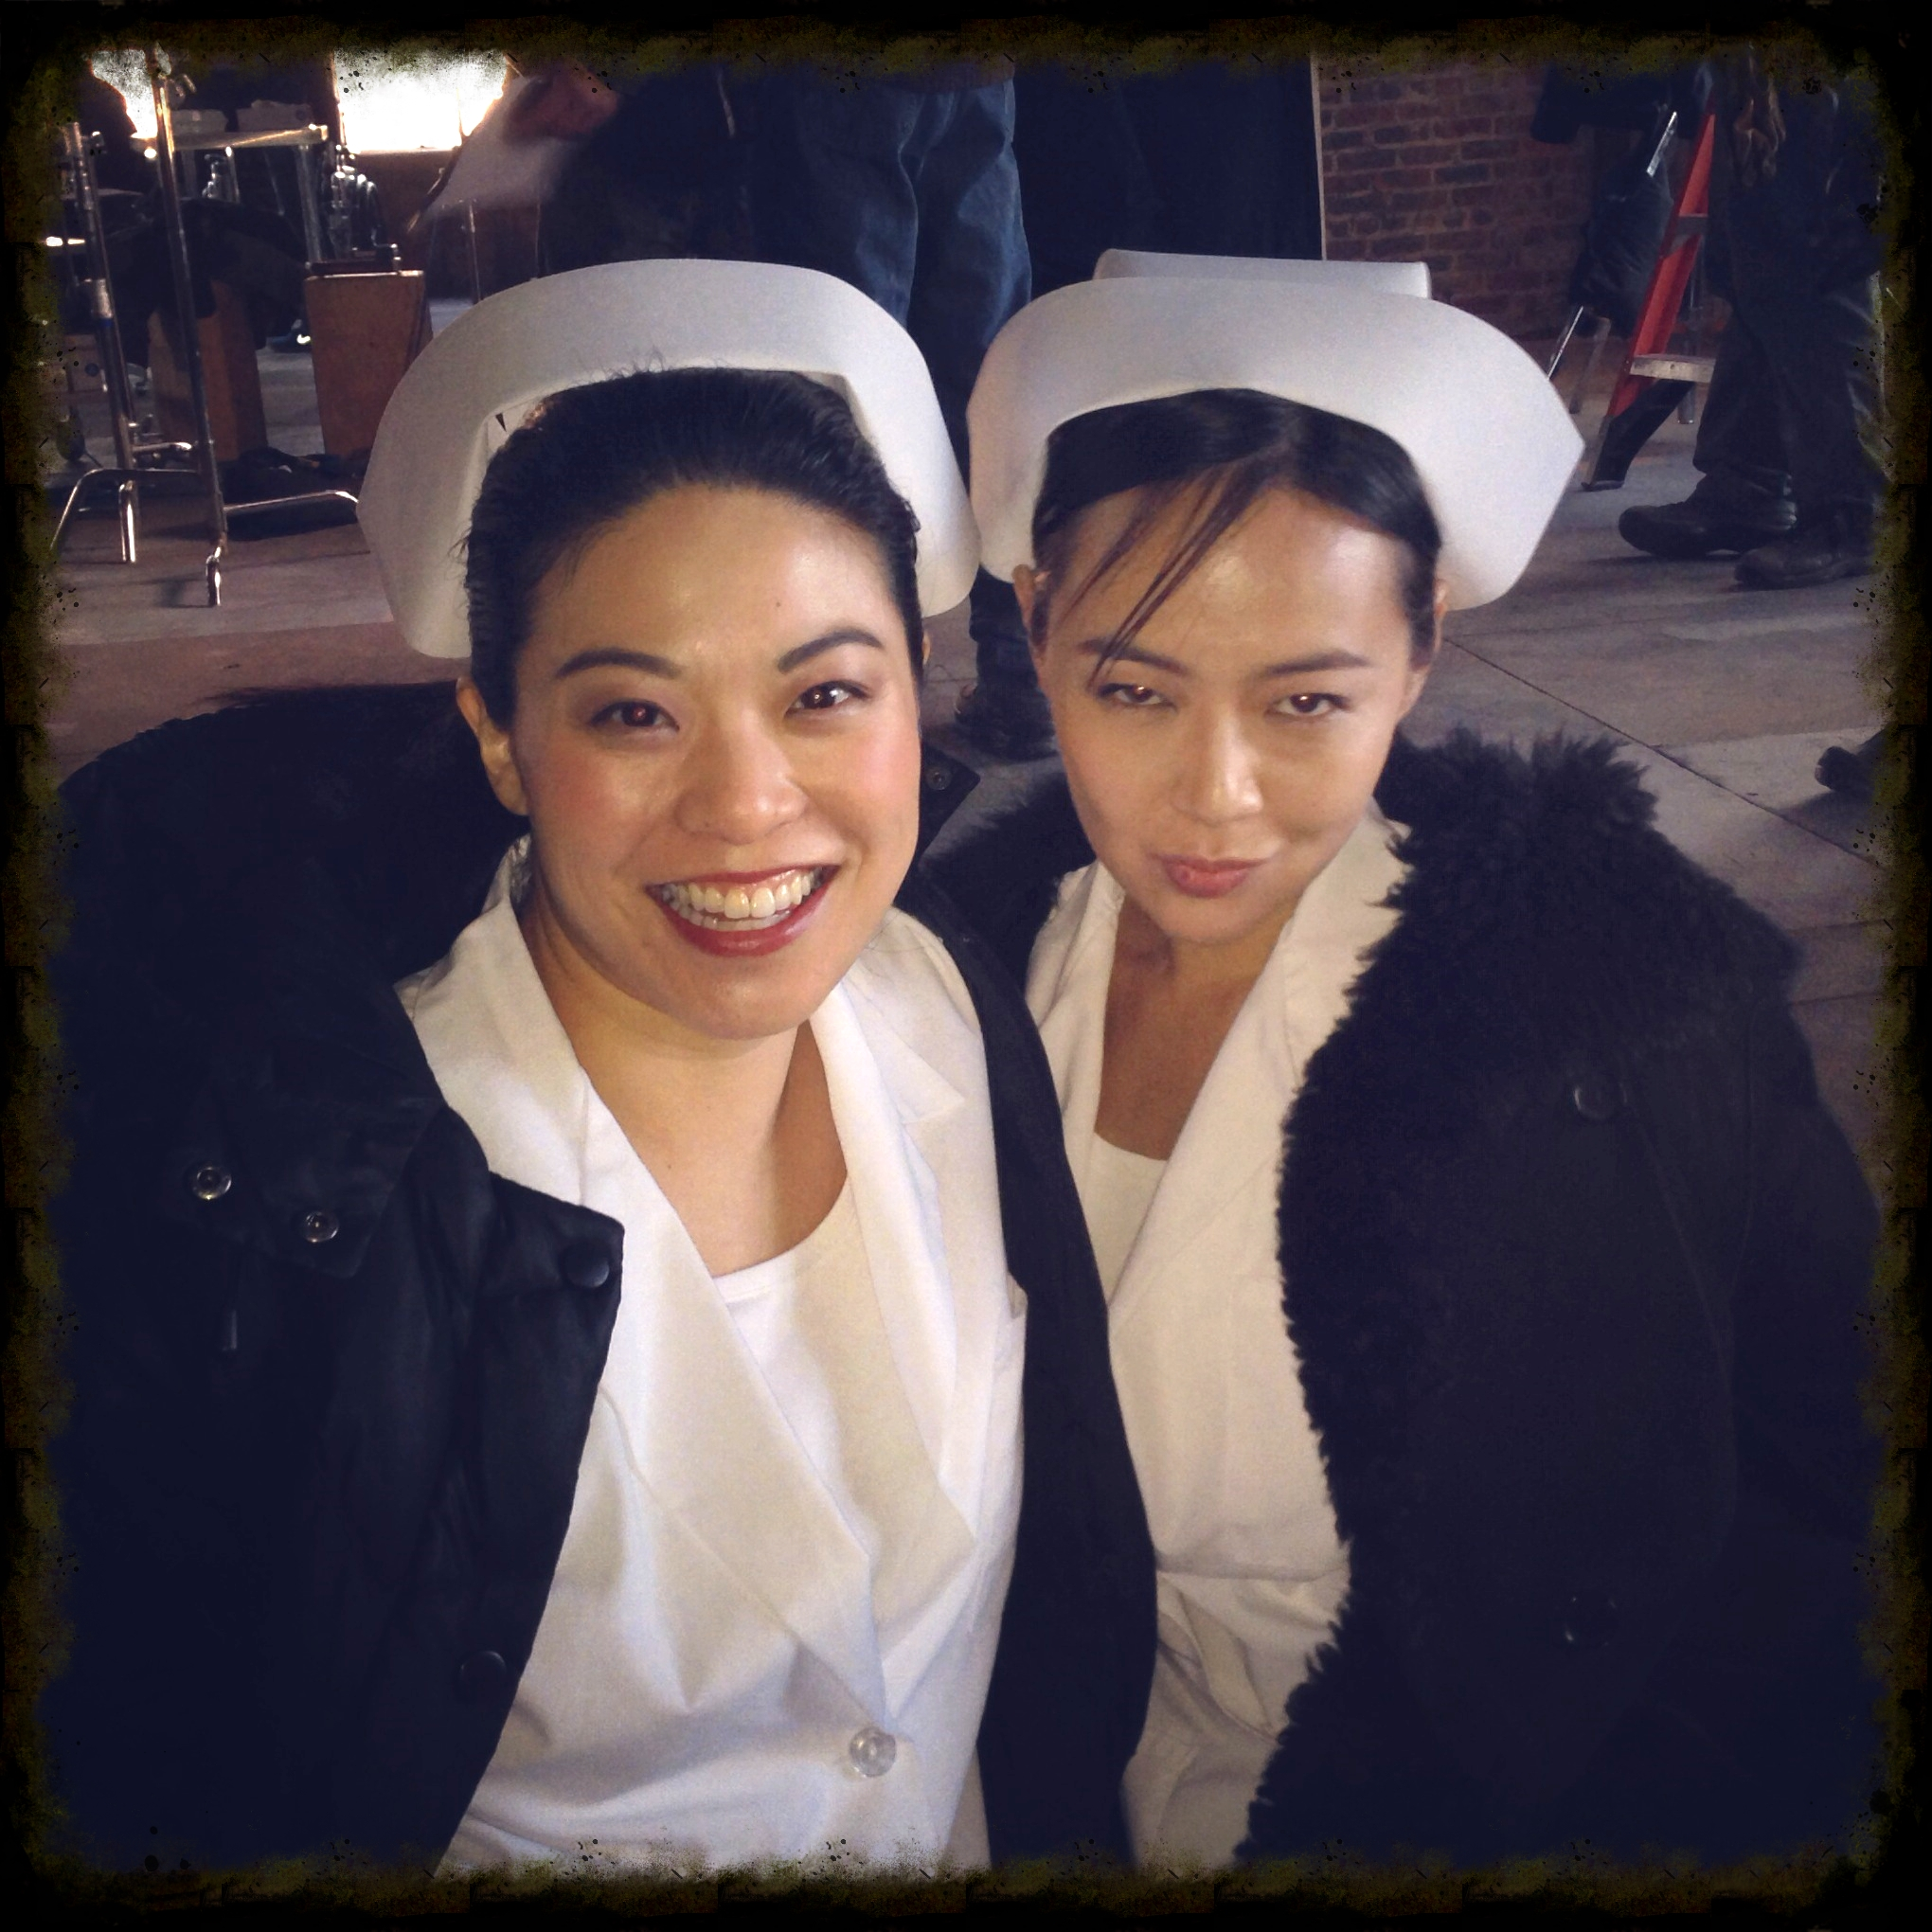 Nurses! Angel & me